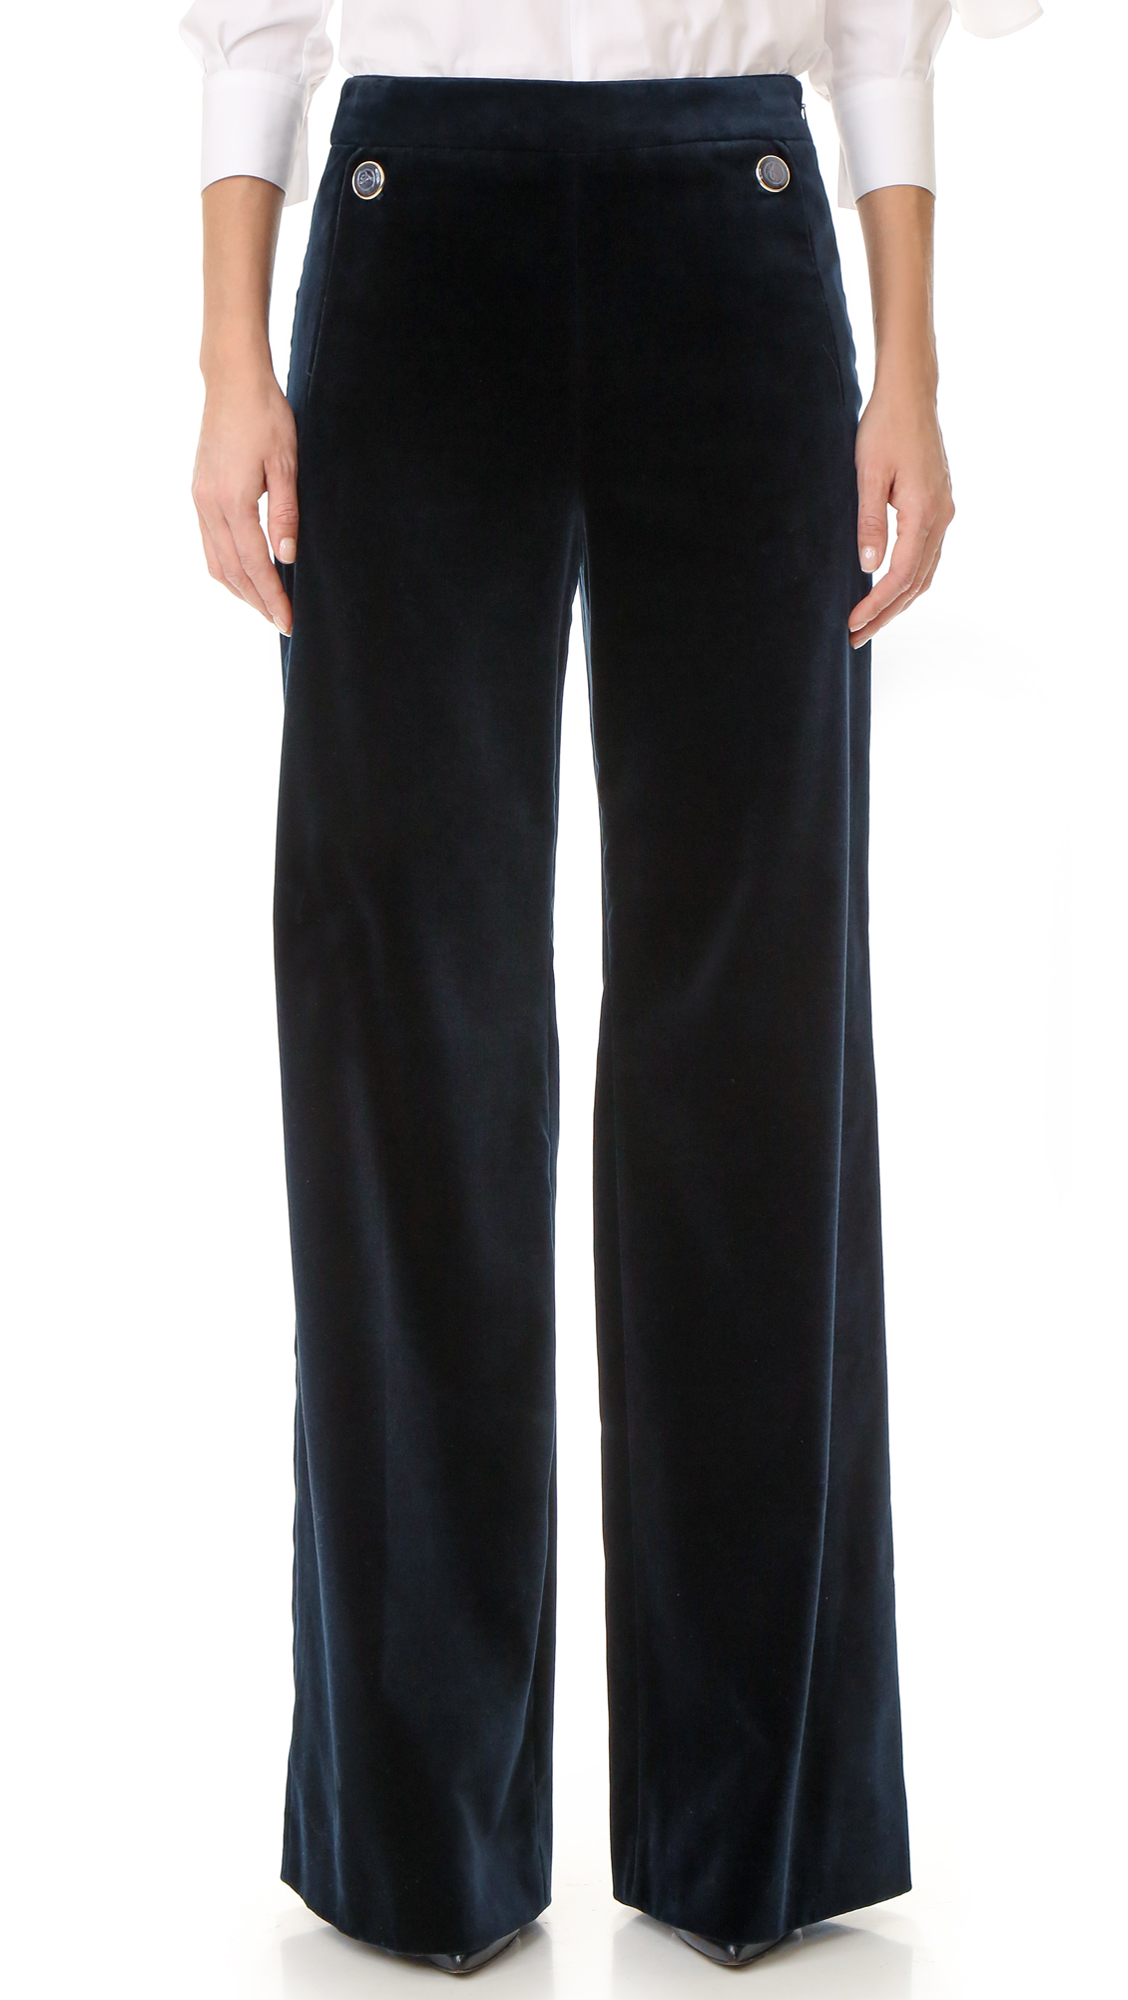 Luxe velvet Temperley London pants in a high waisted, wide leg profile. Enamel inlaid buttons accent the front, and welt pockets detail the back. Hidden side zip. Fabric: Velvet. 70% cotton/28% viscose/2% elastane. Dry clean. Made in